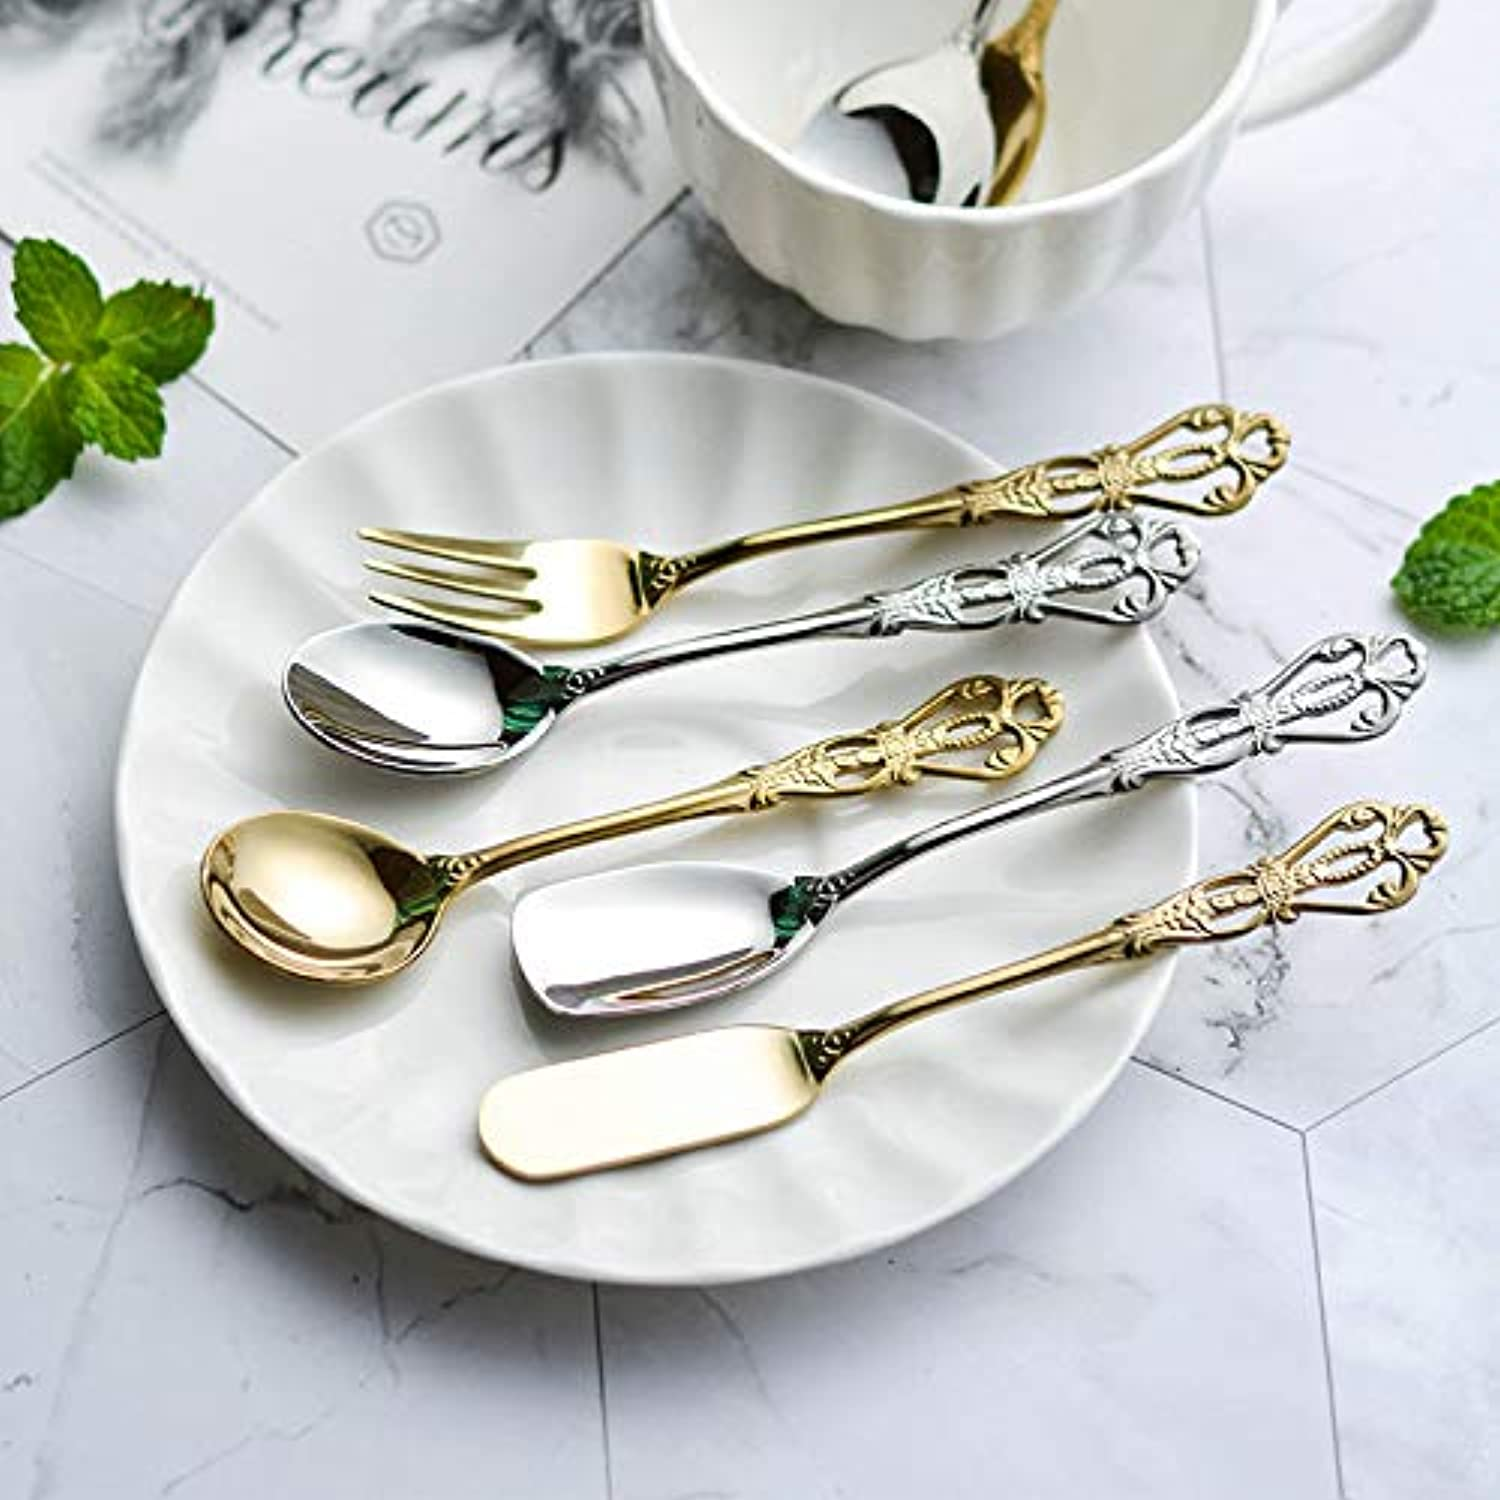 5pcs 304 Stainless Steel Vintage Spoon for Coffee Tea Dessert Spoons Set Hollow Handle gold Cutlery Small Spoon Fork Christmas   Silver 5style